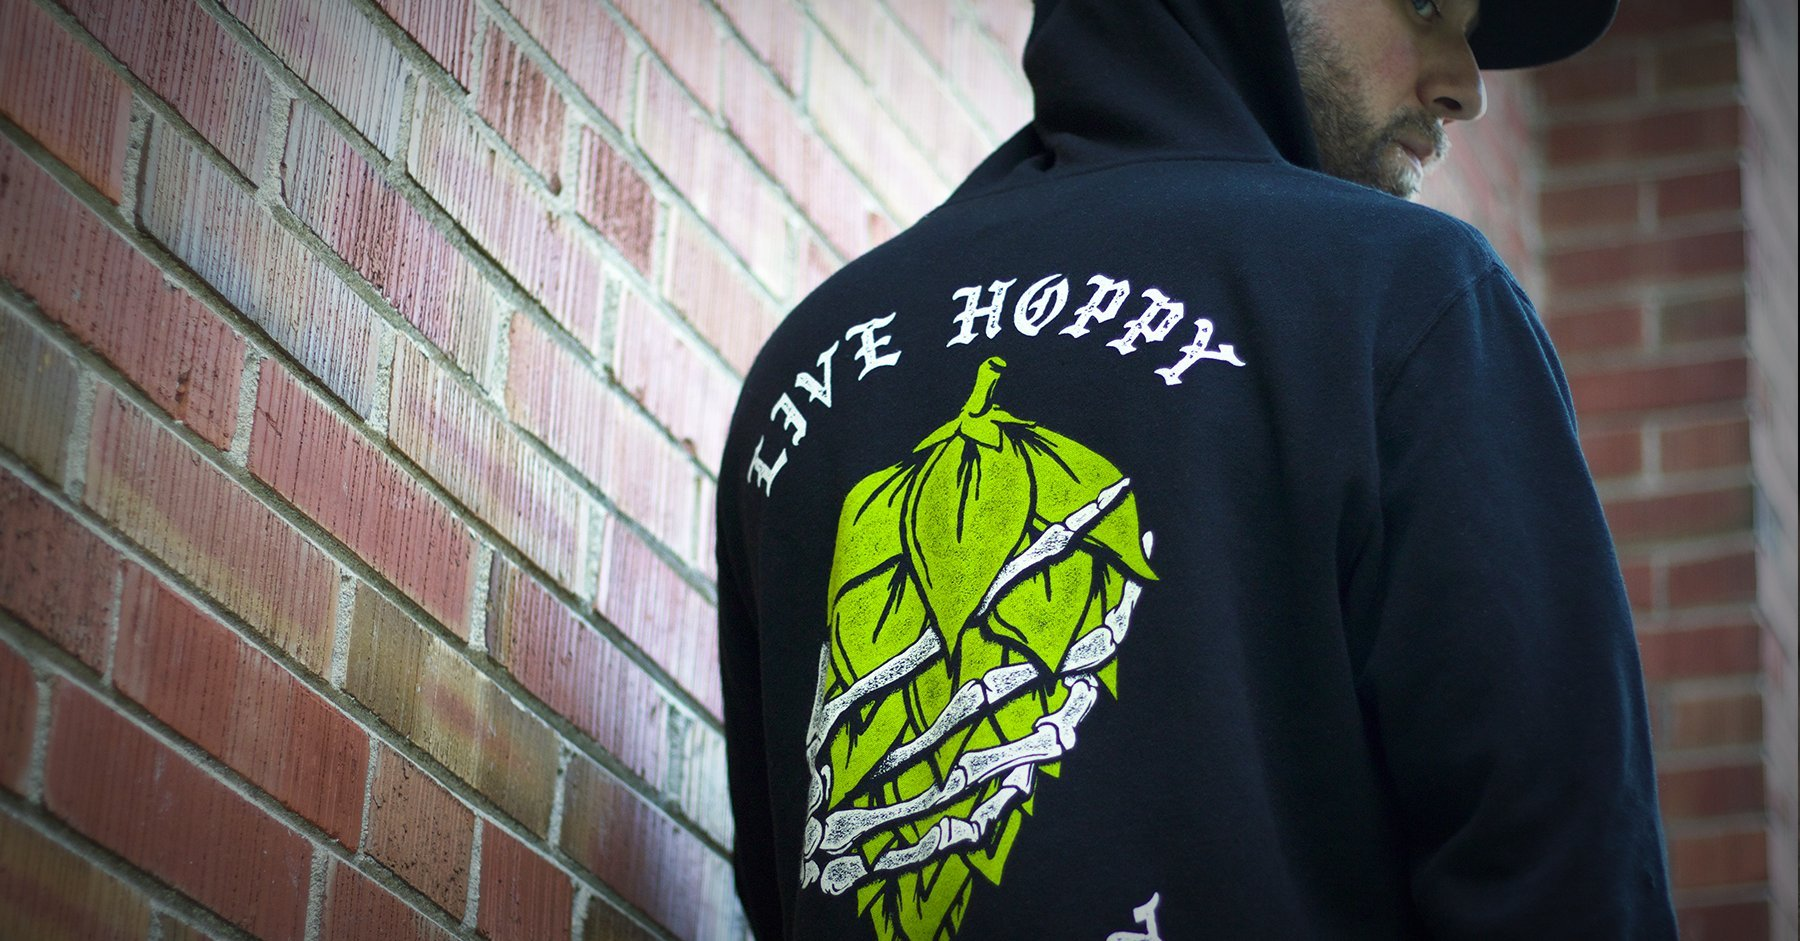 BrewHeads Live Hoppy Die Hoppy Craft Beer Hoodie for Craft beer fans